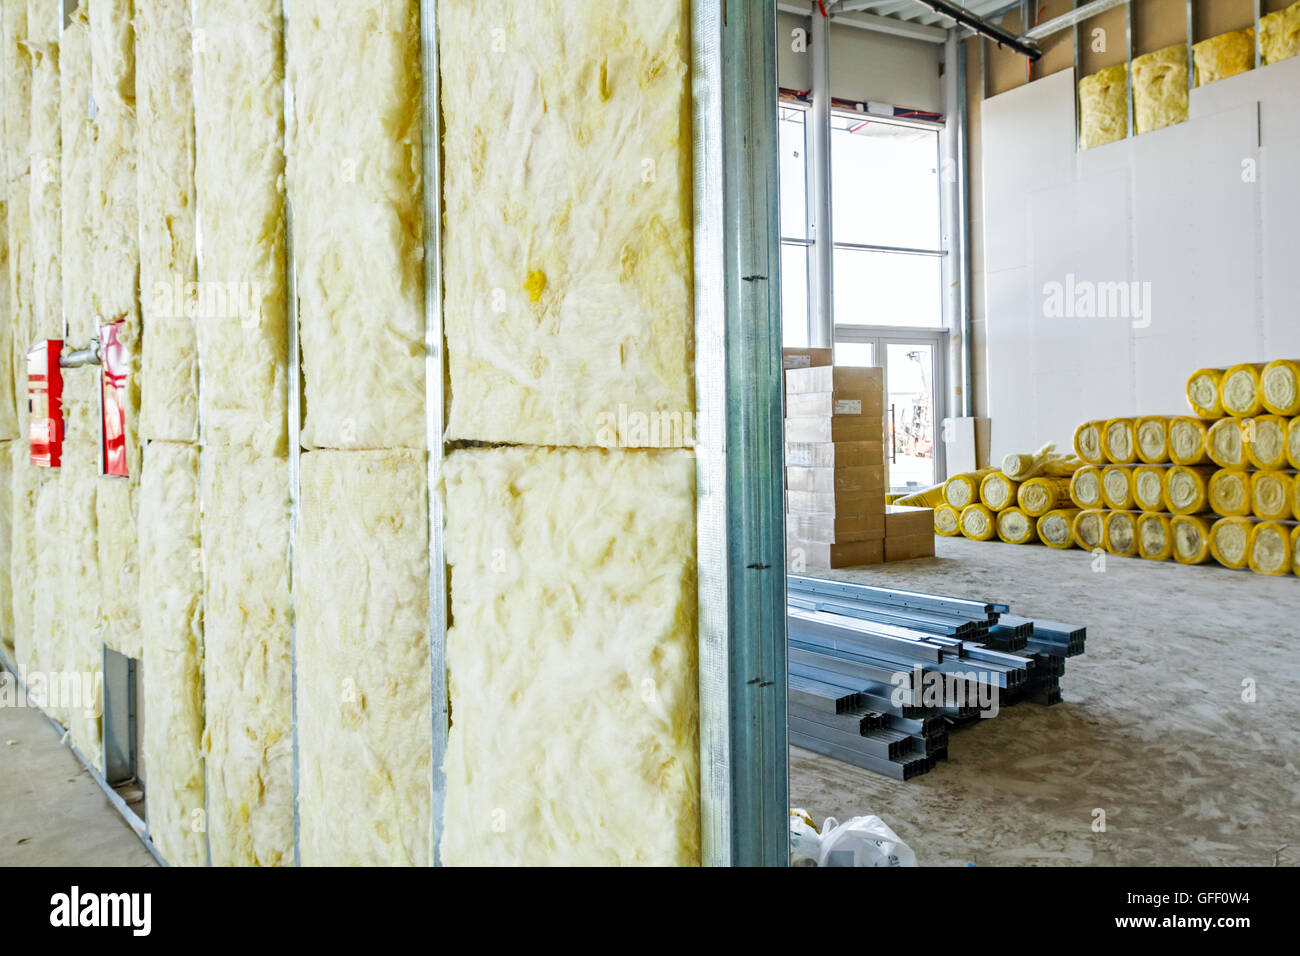 Unfinished building interior, heat isolation wall project with mineral wool is in progress. - Stock Image